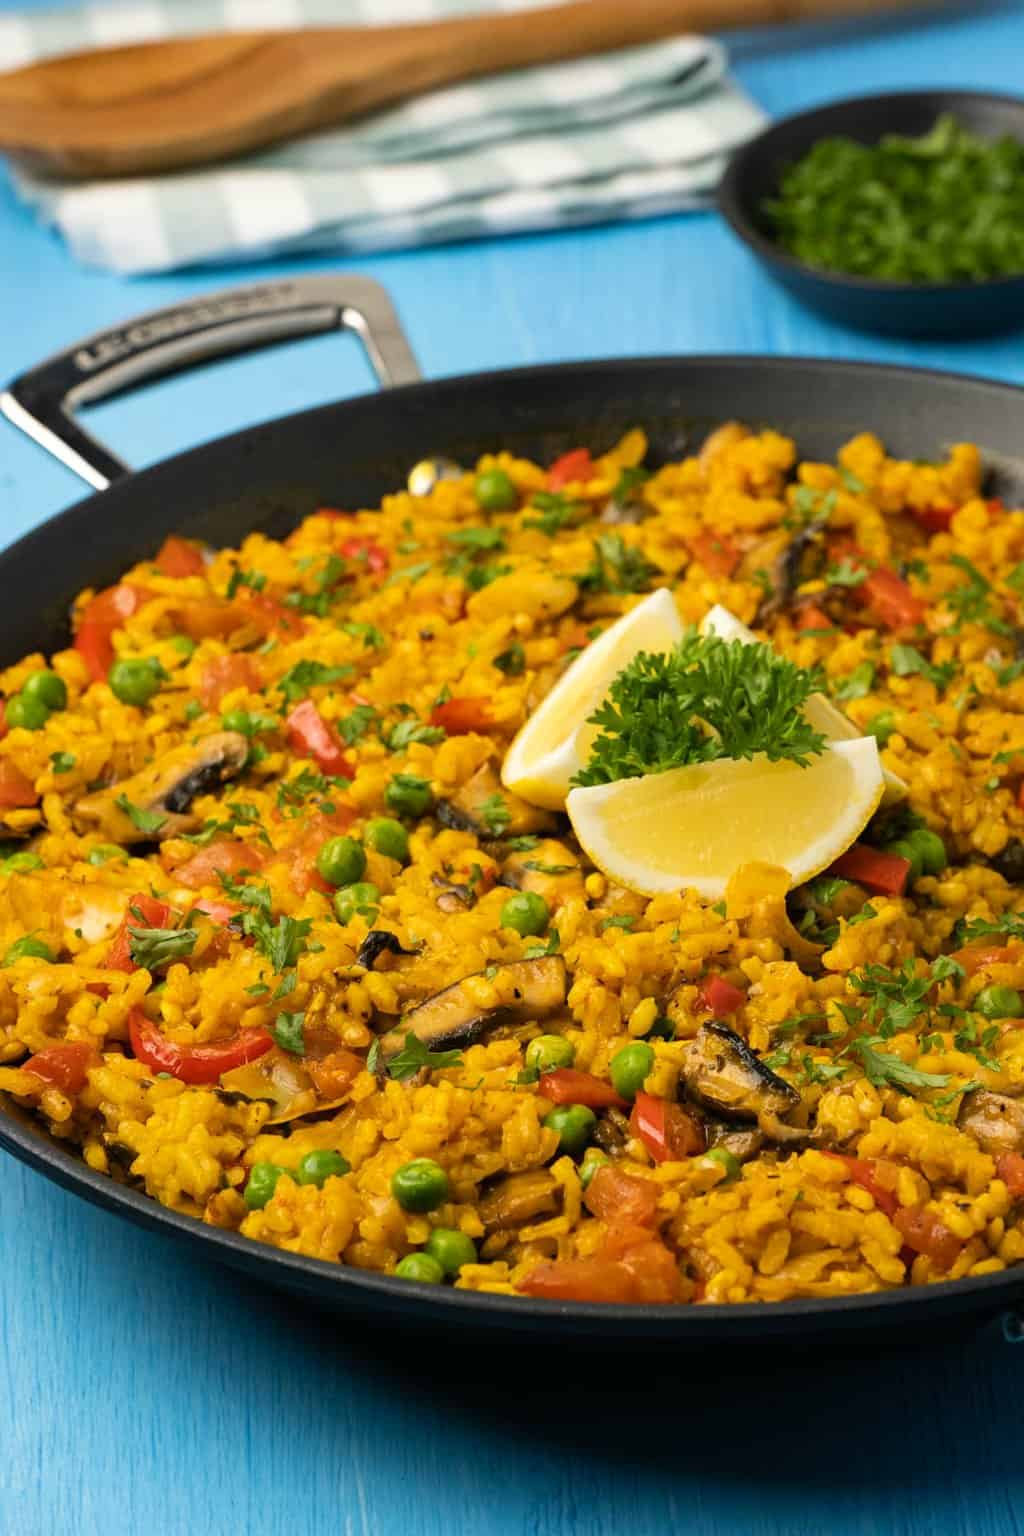 Paella topped with lemon wedges and parsley in a paella pan.